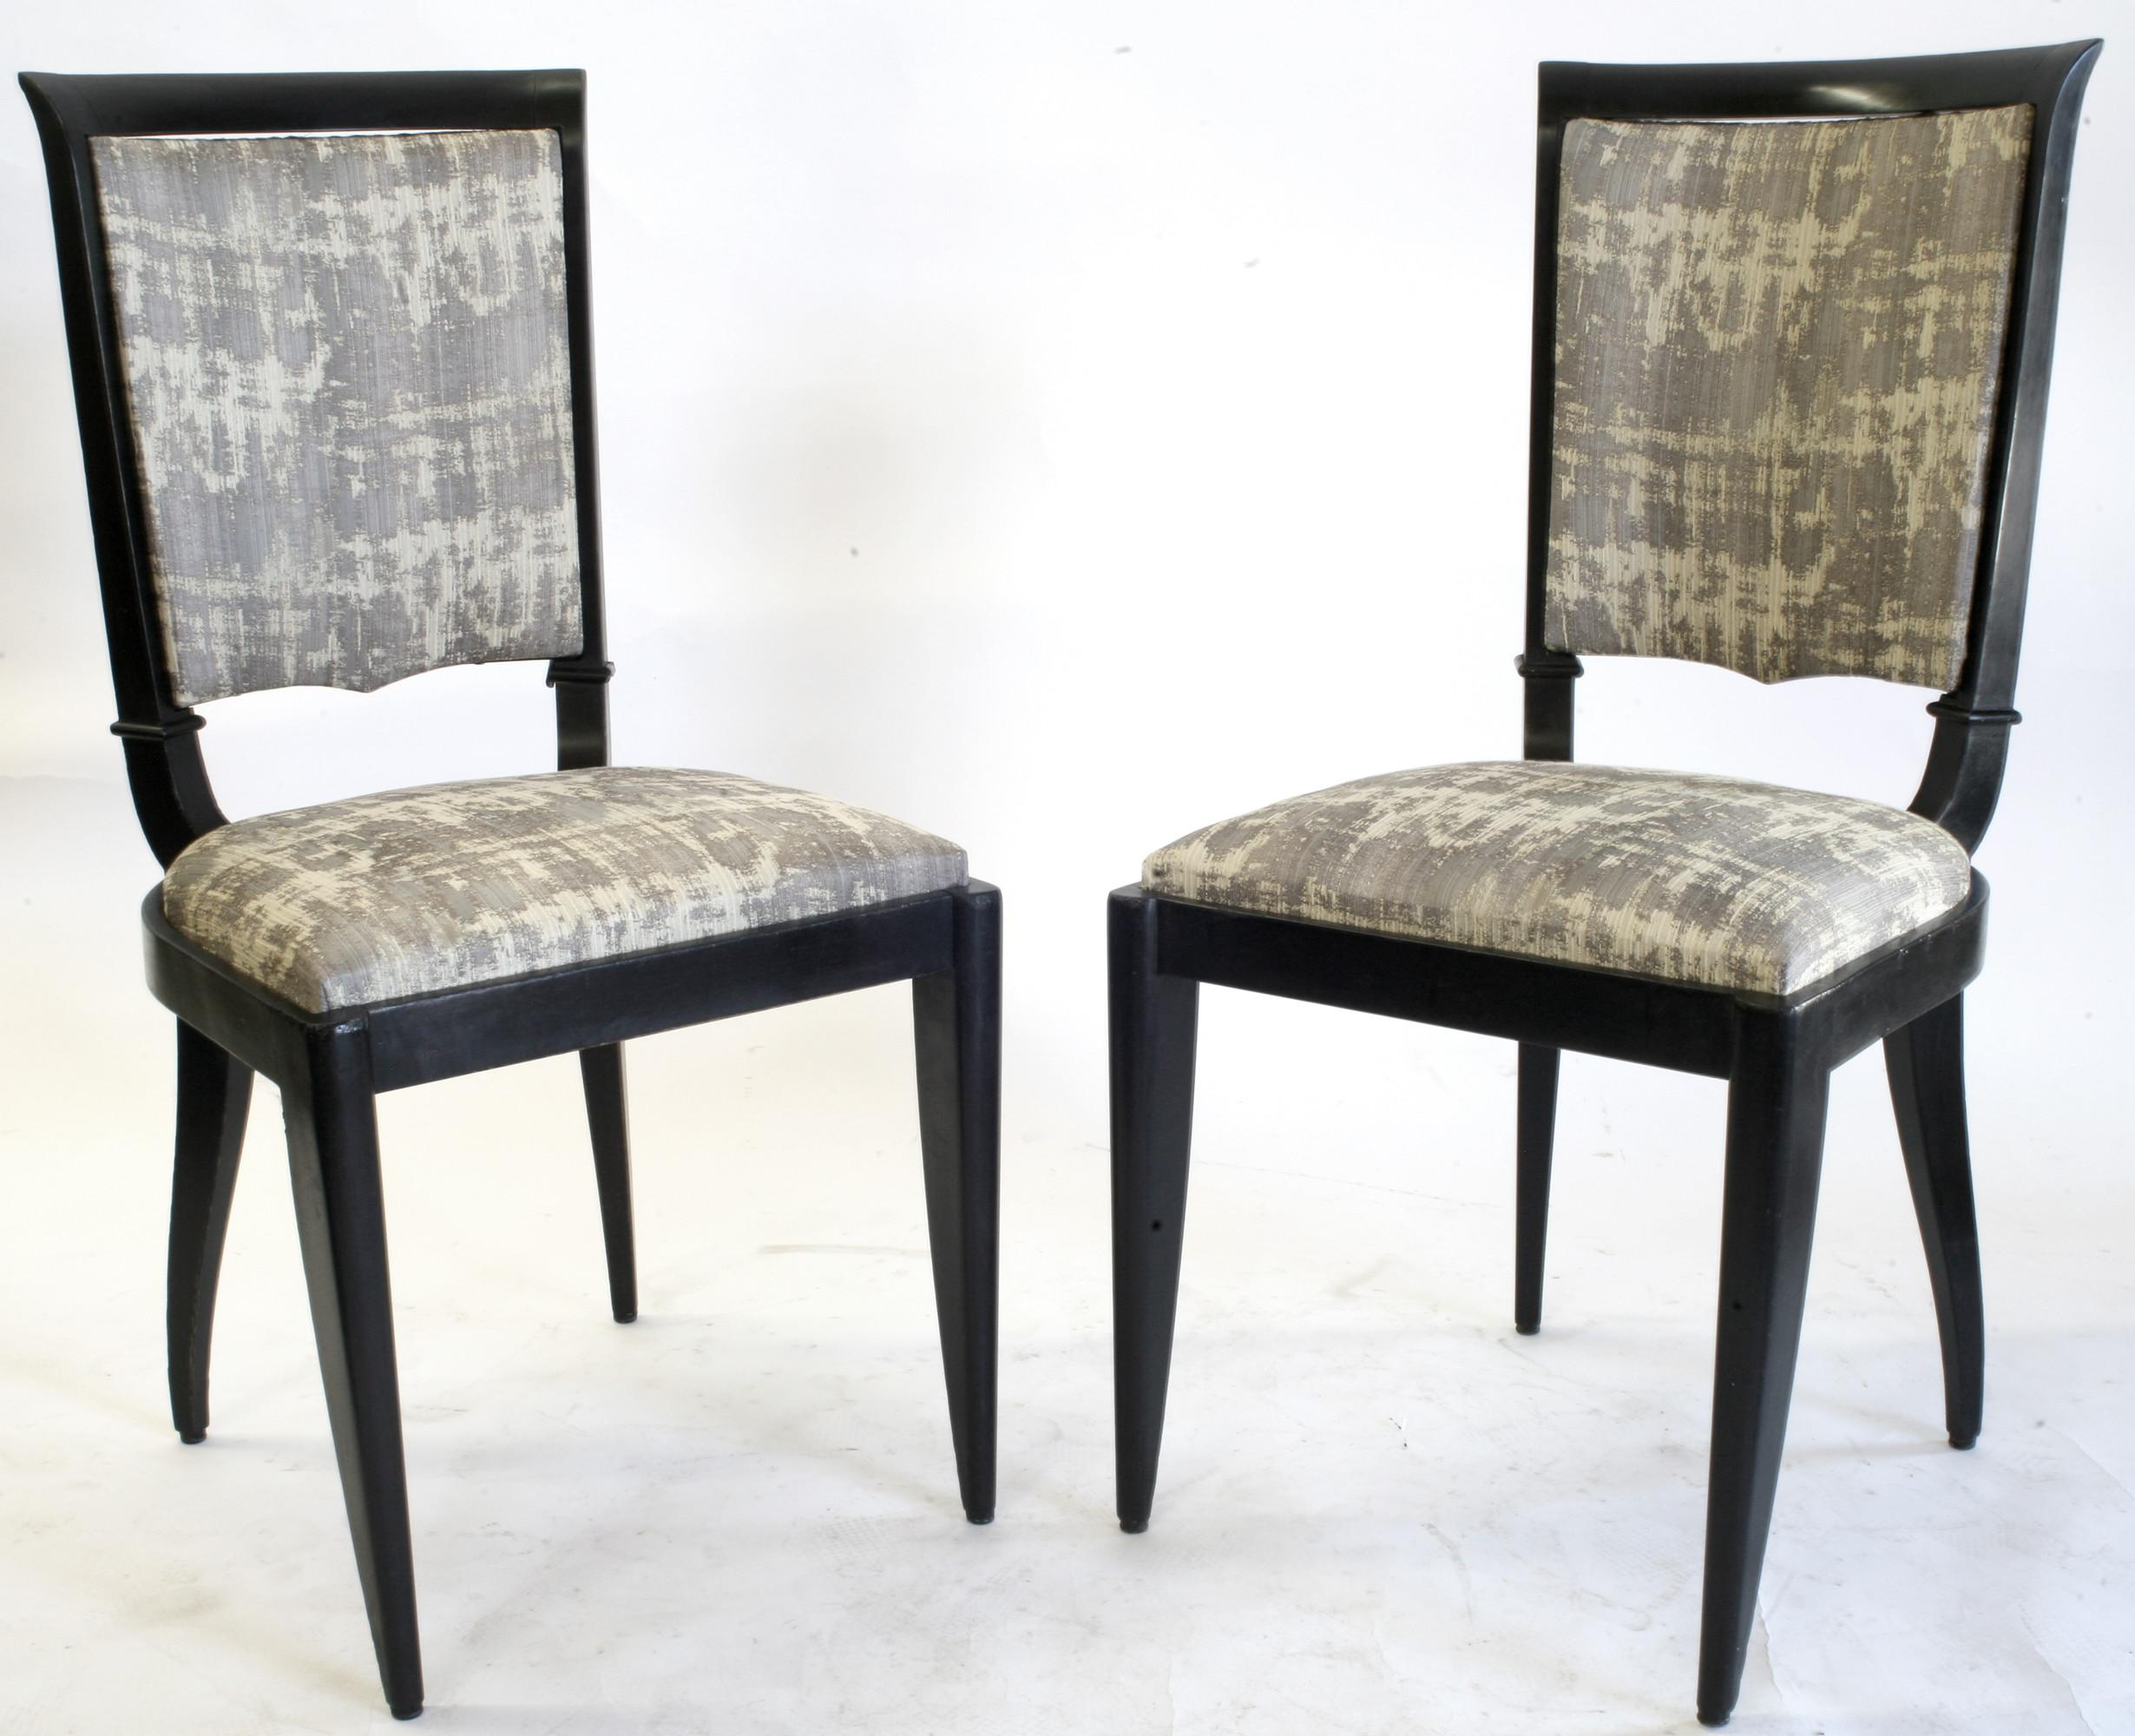 1930 French Art Deco Leleu Dining Chairs Set Omero Home